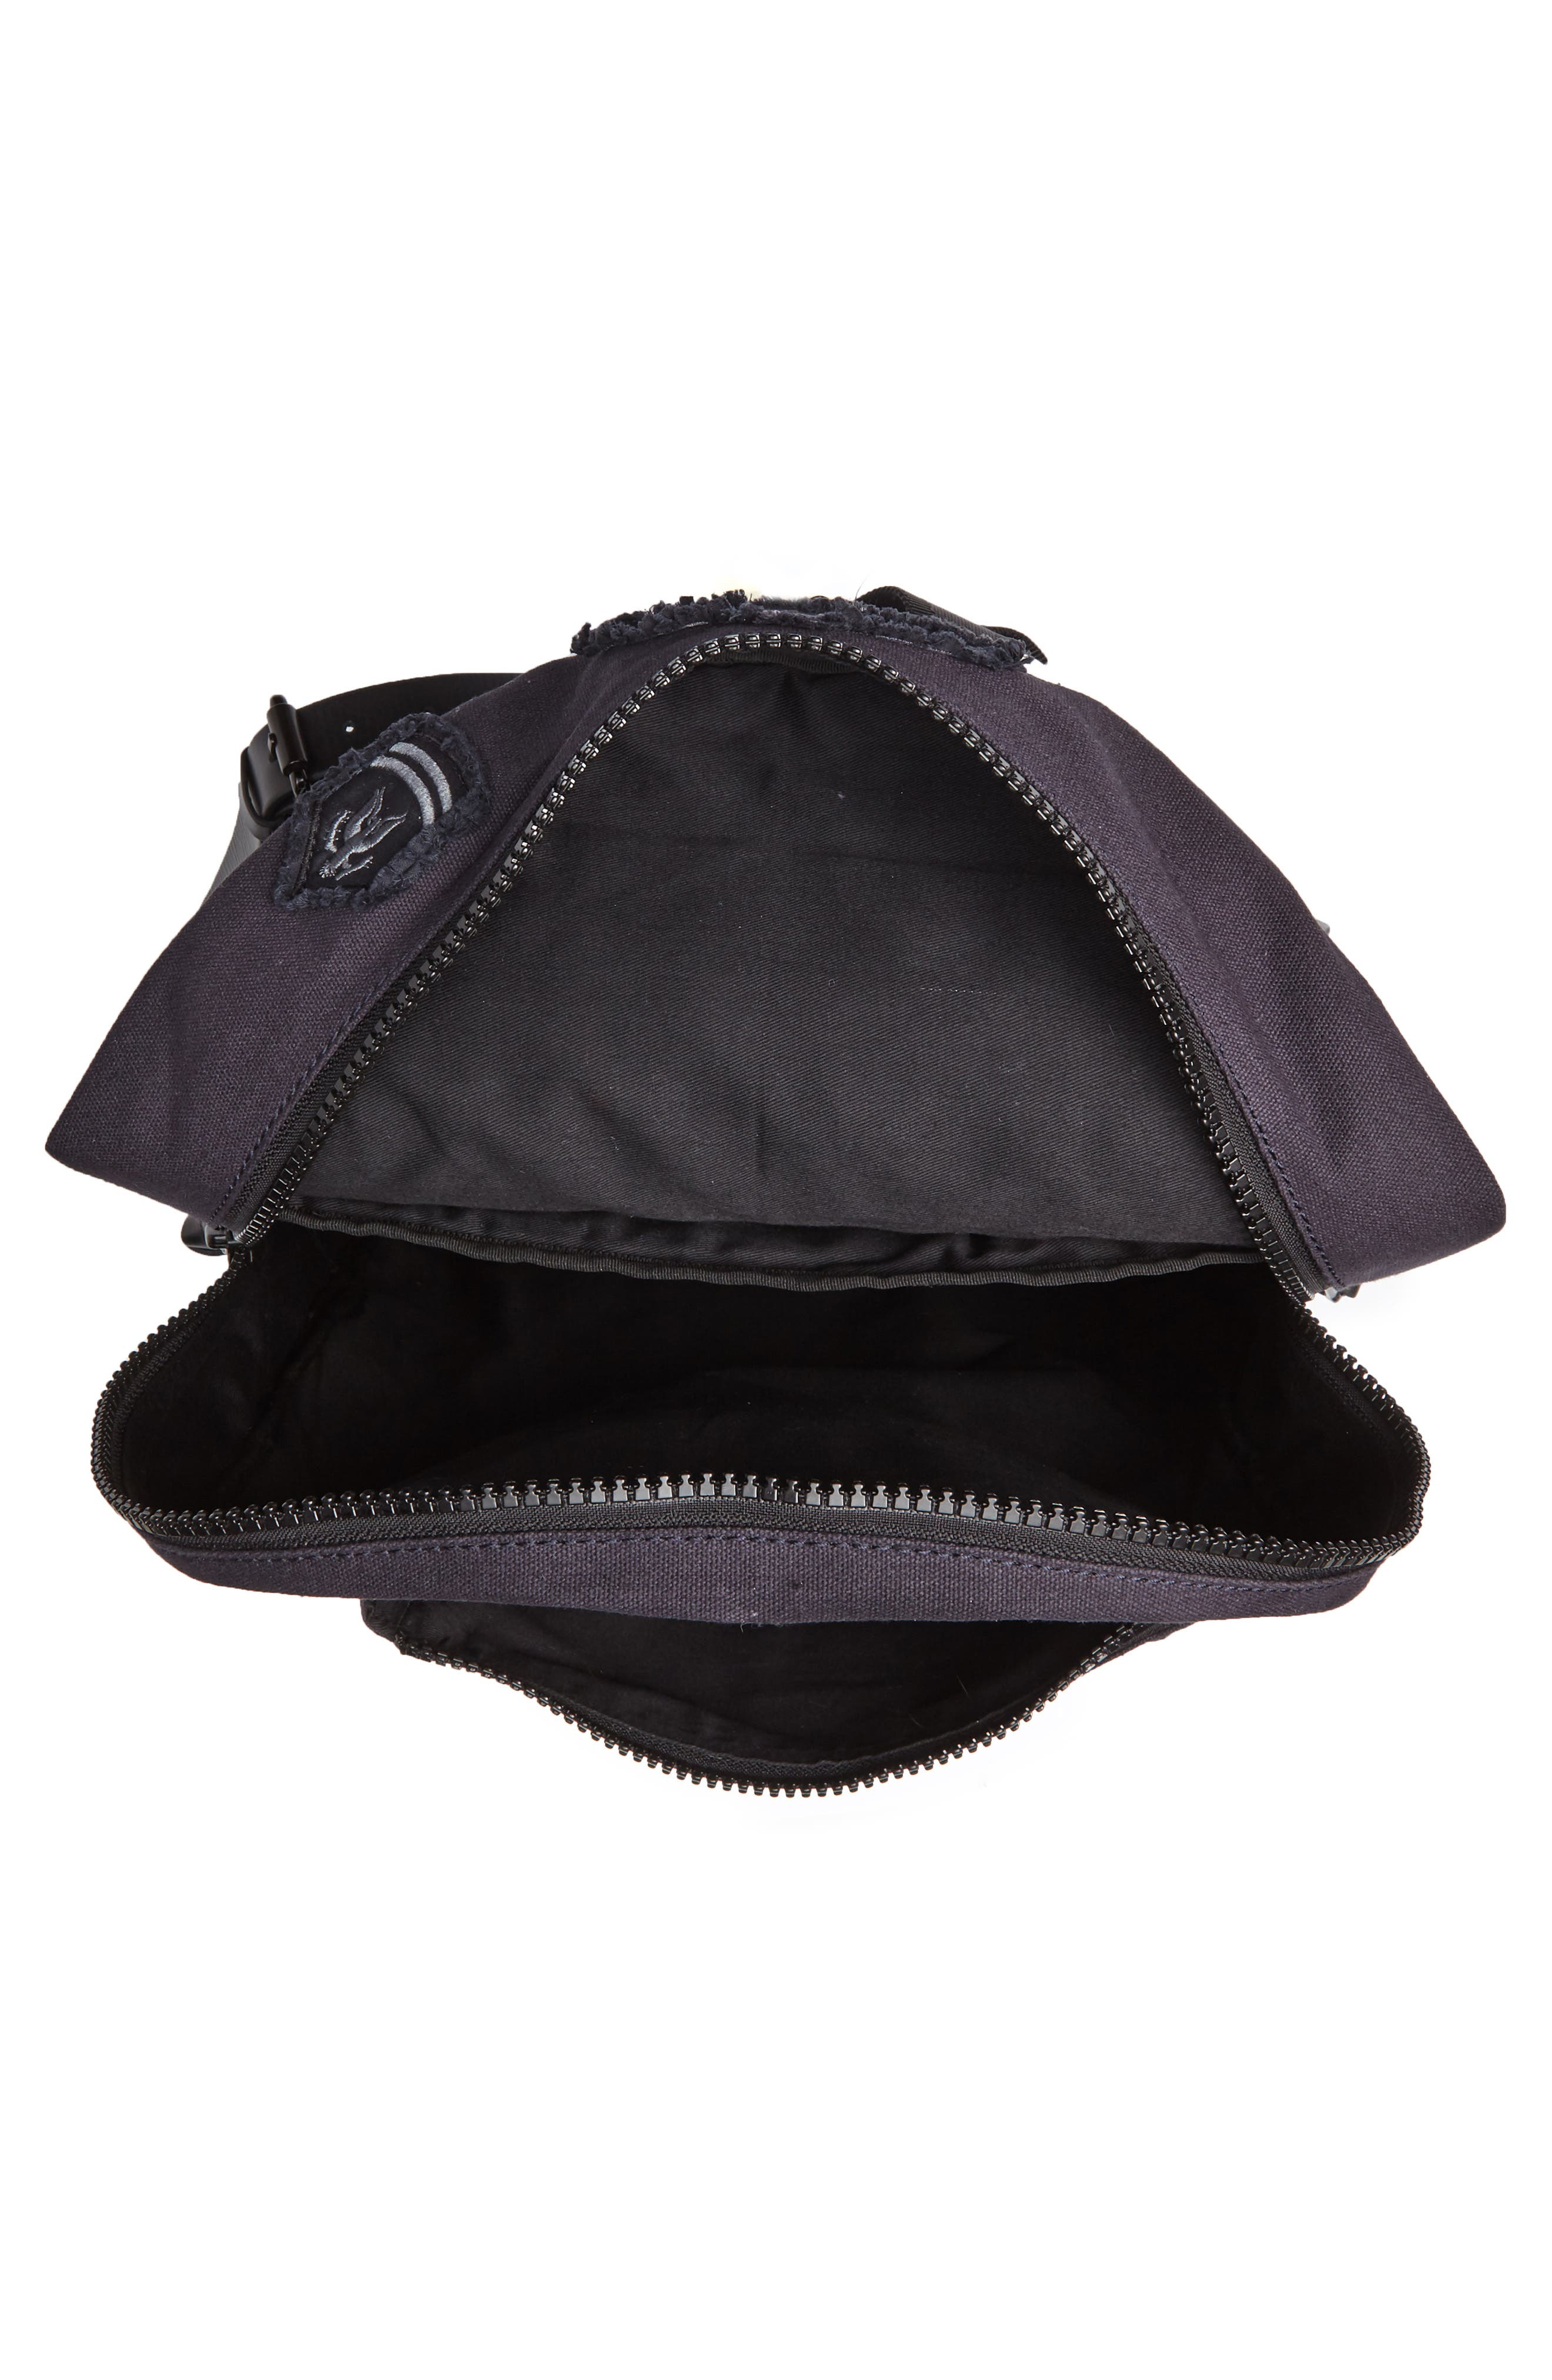 Gibson Patch Backpack,                             Alternate thumbnail 4, color,